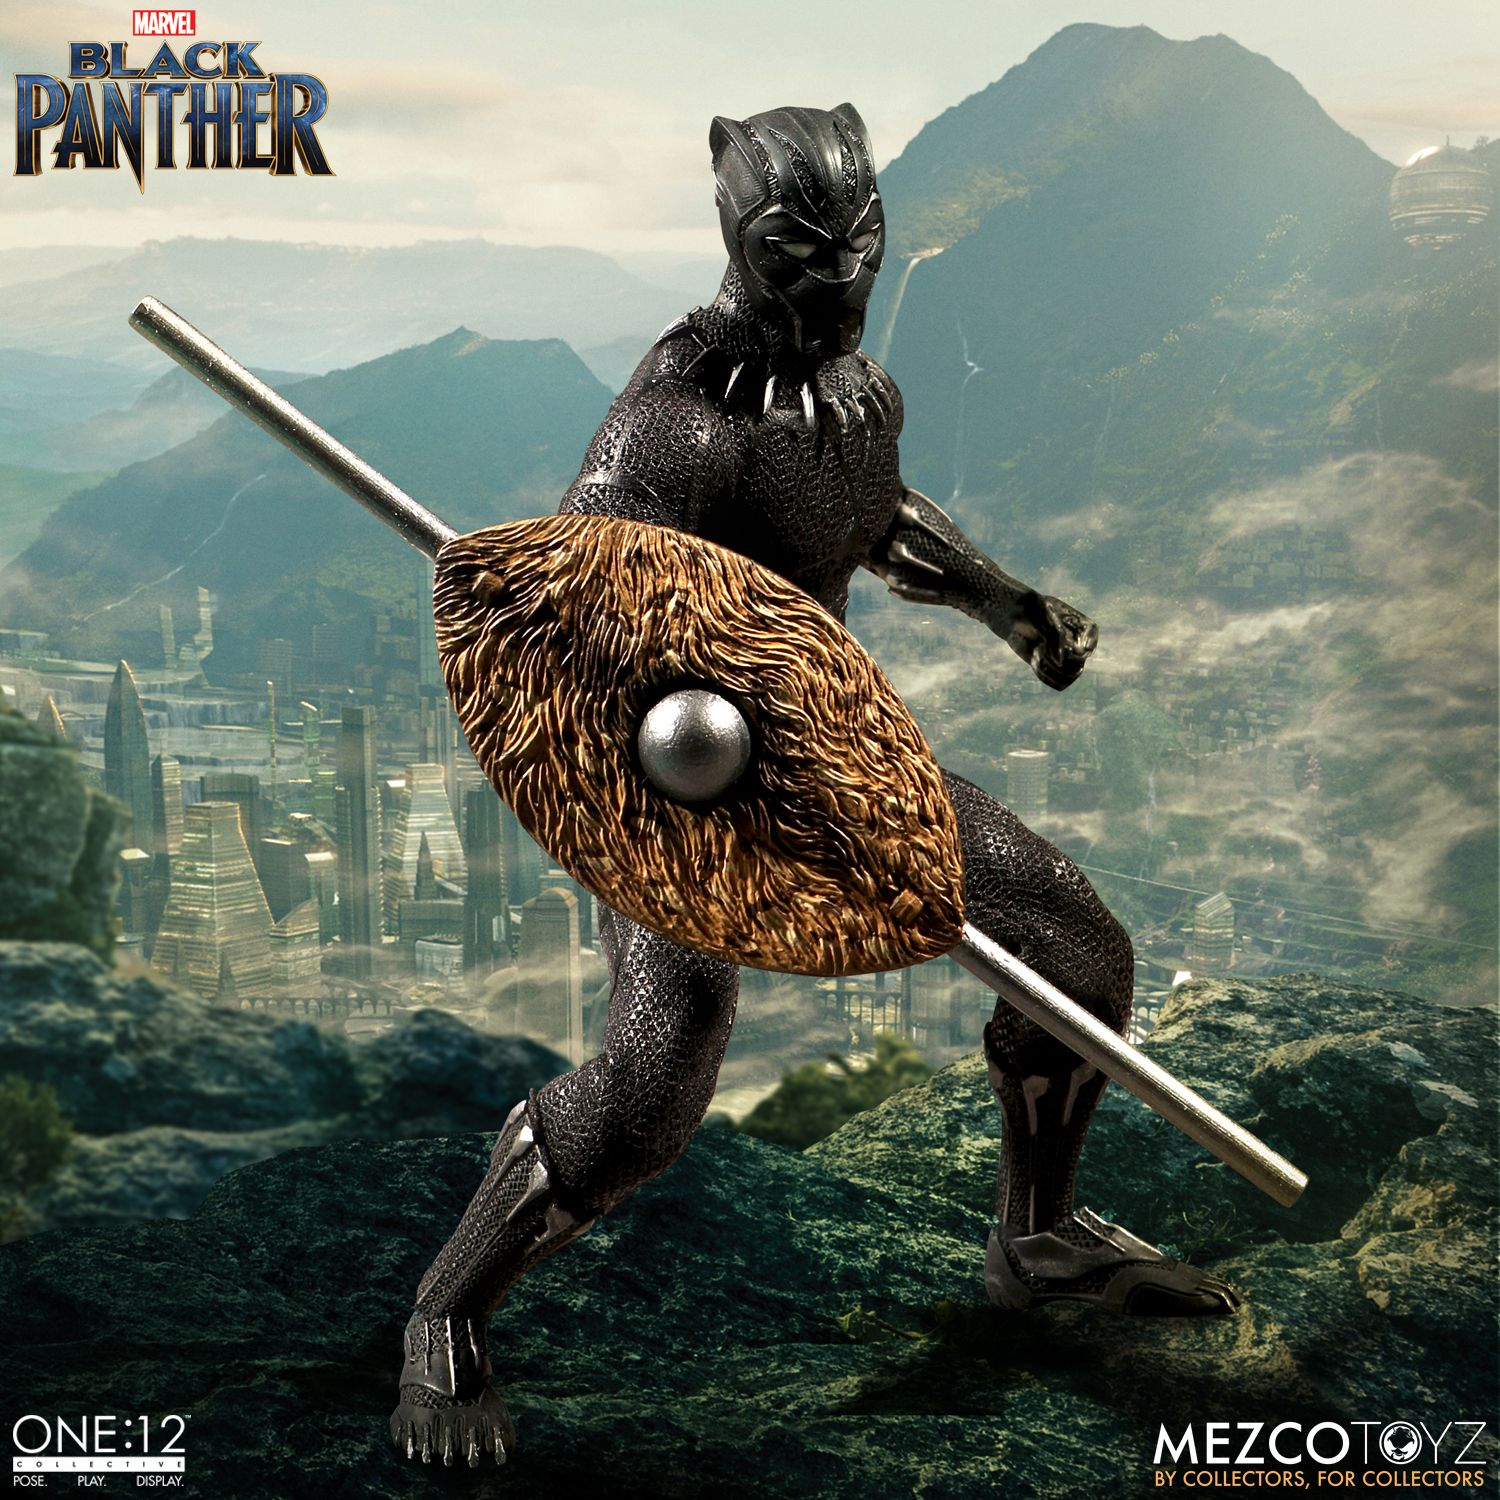 black panther mezco one 12 figure 8